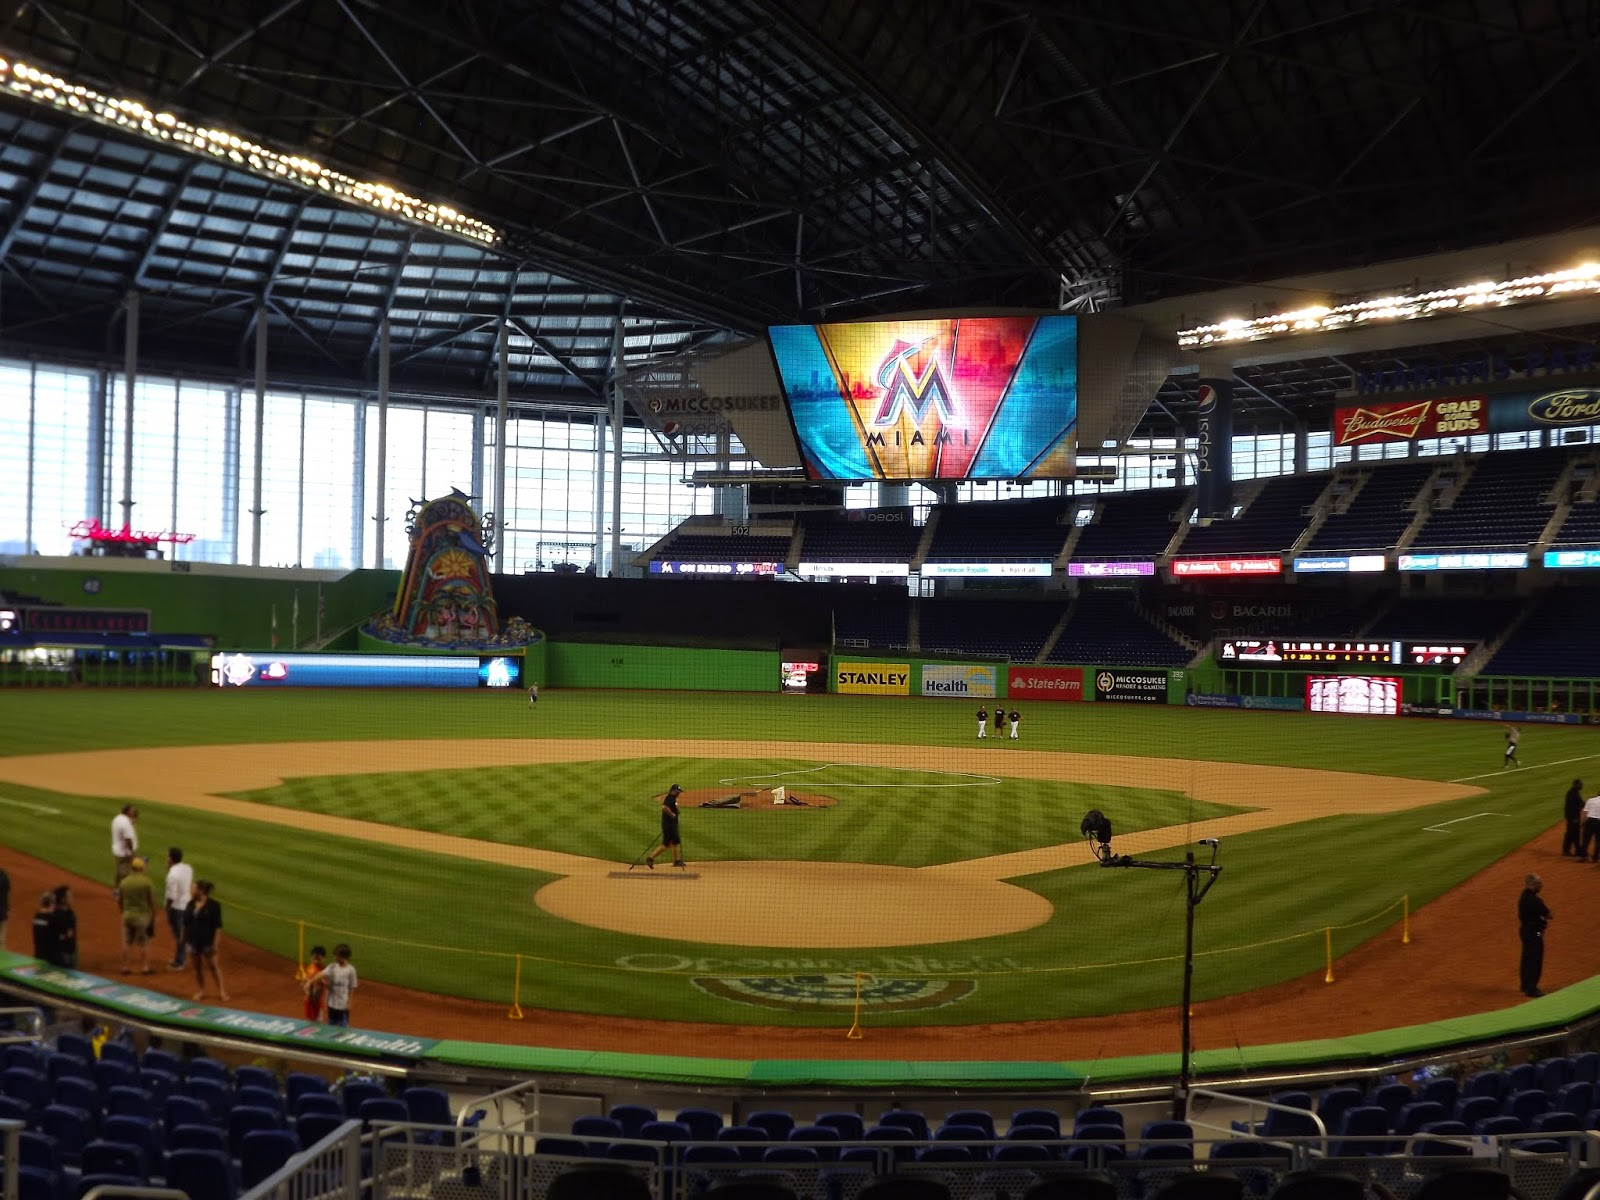 50 High Quality Photos Of Opening Day At Miami BMarlins Park